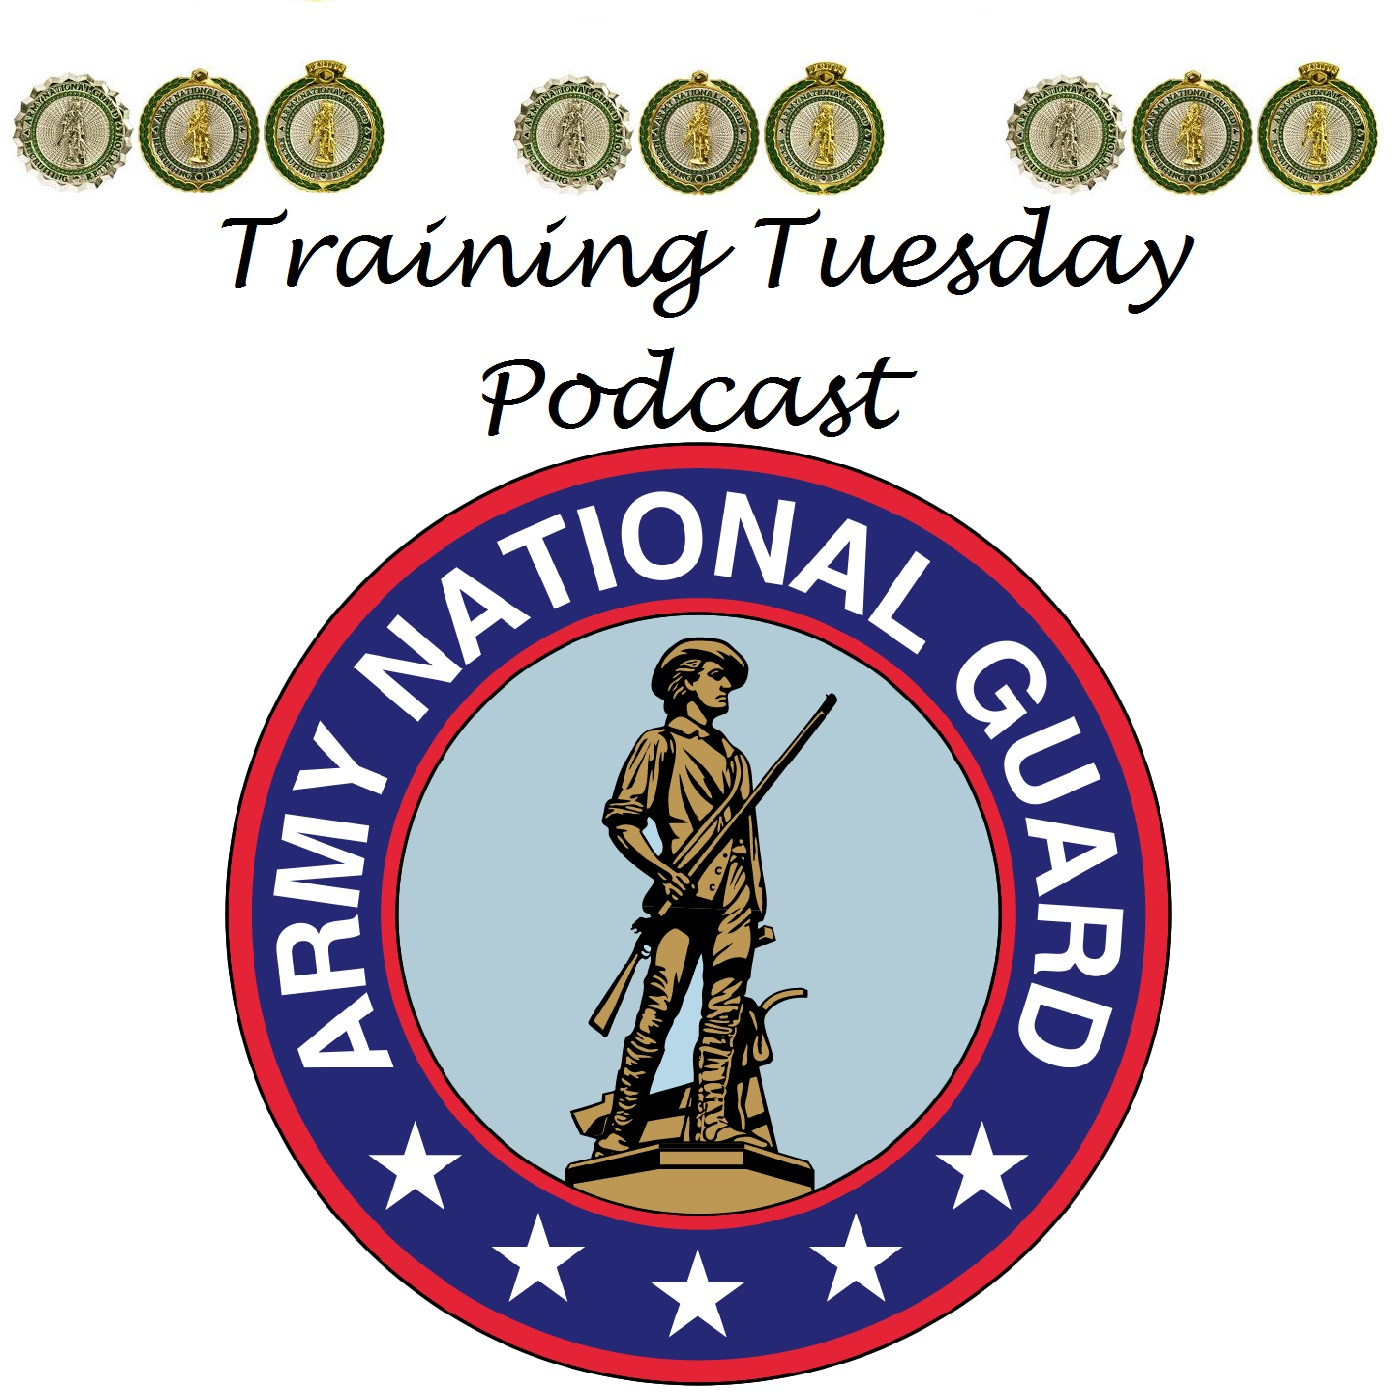 TRAINING TUESDAY PODCAST 034 (ARMY CIVILIANS; BUILD RAPPORT; SELF ASSESSMENT TOOLS)